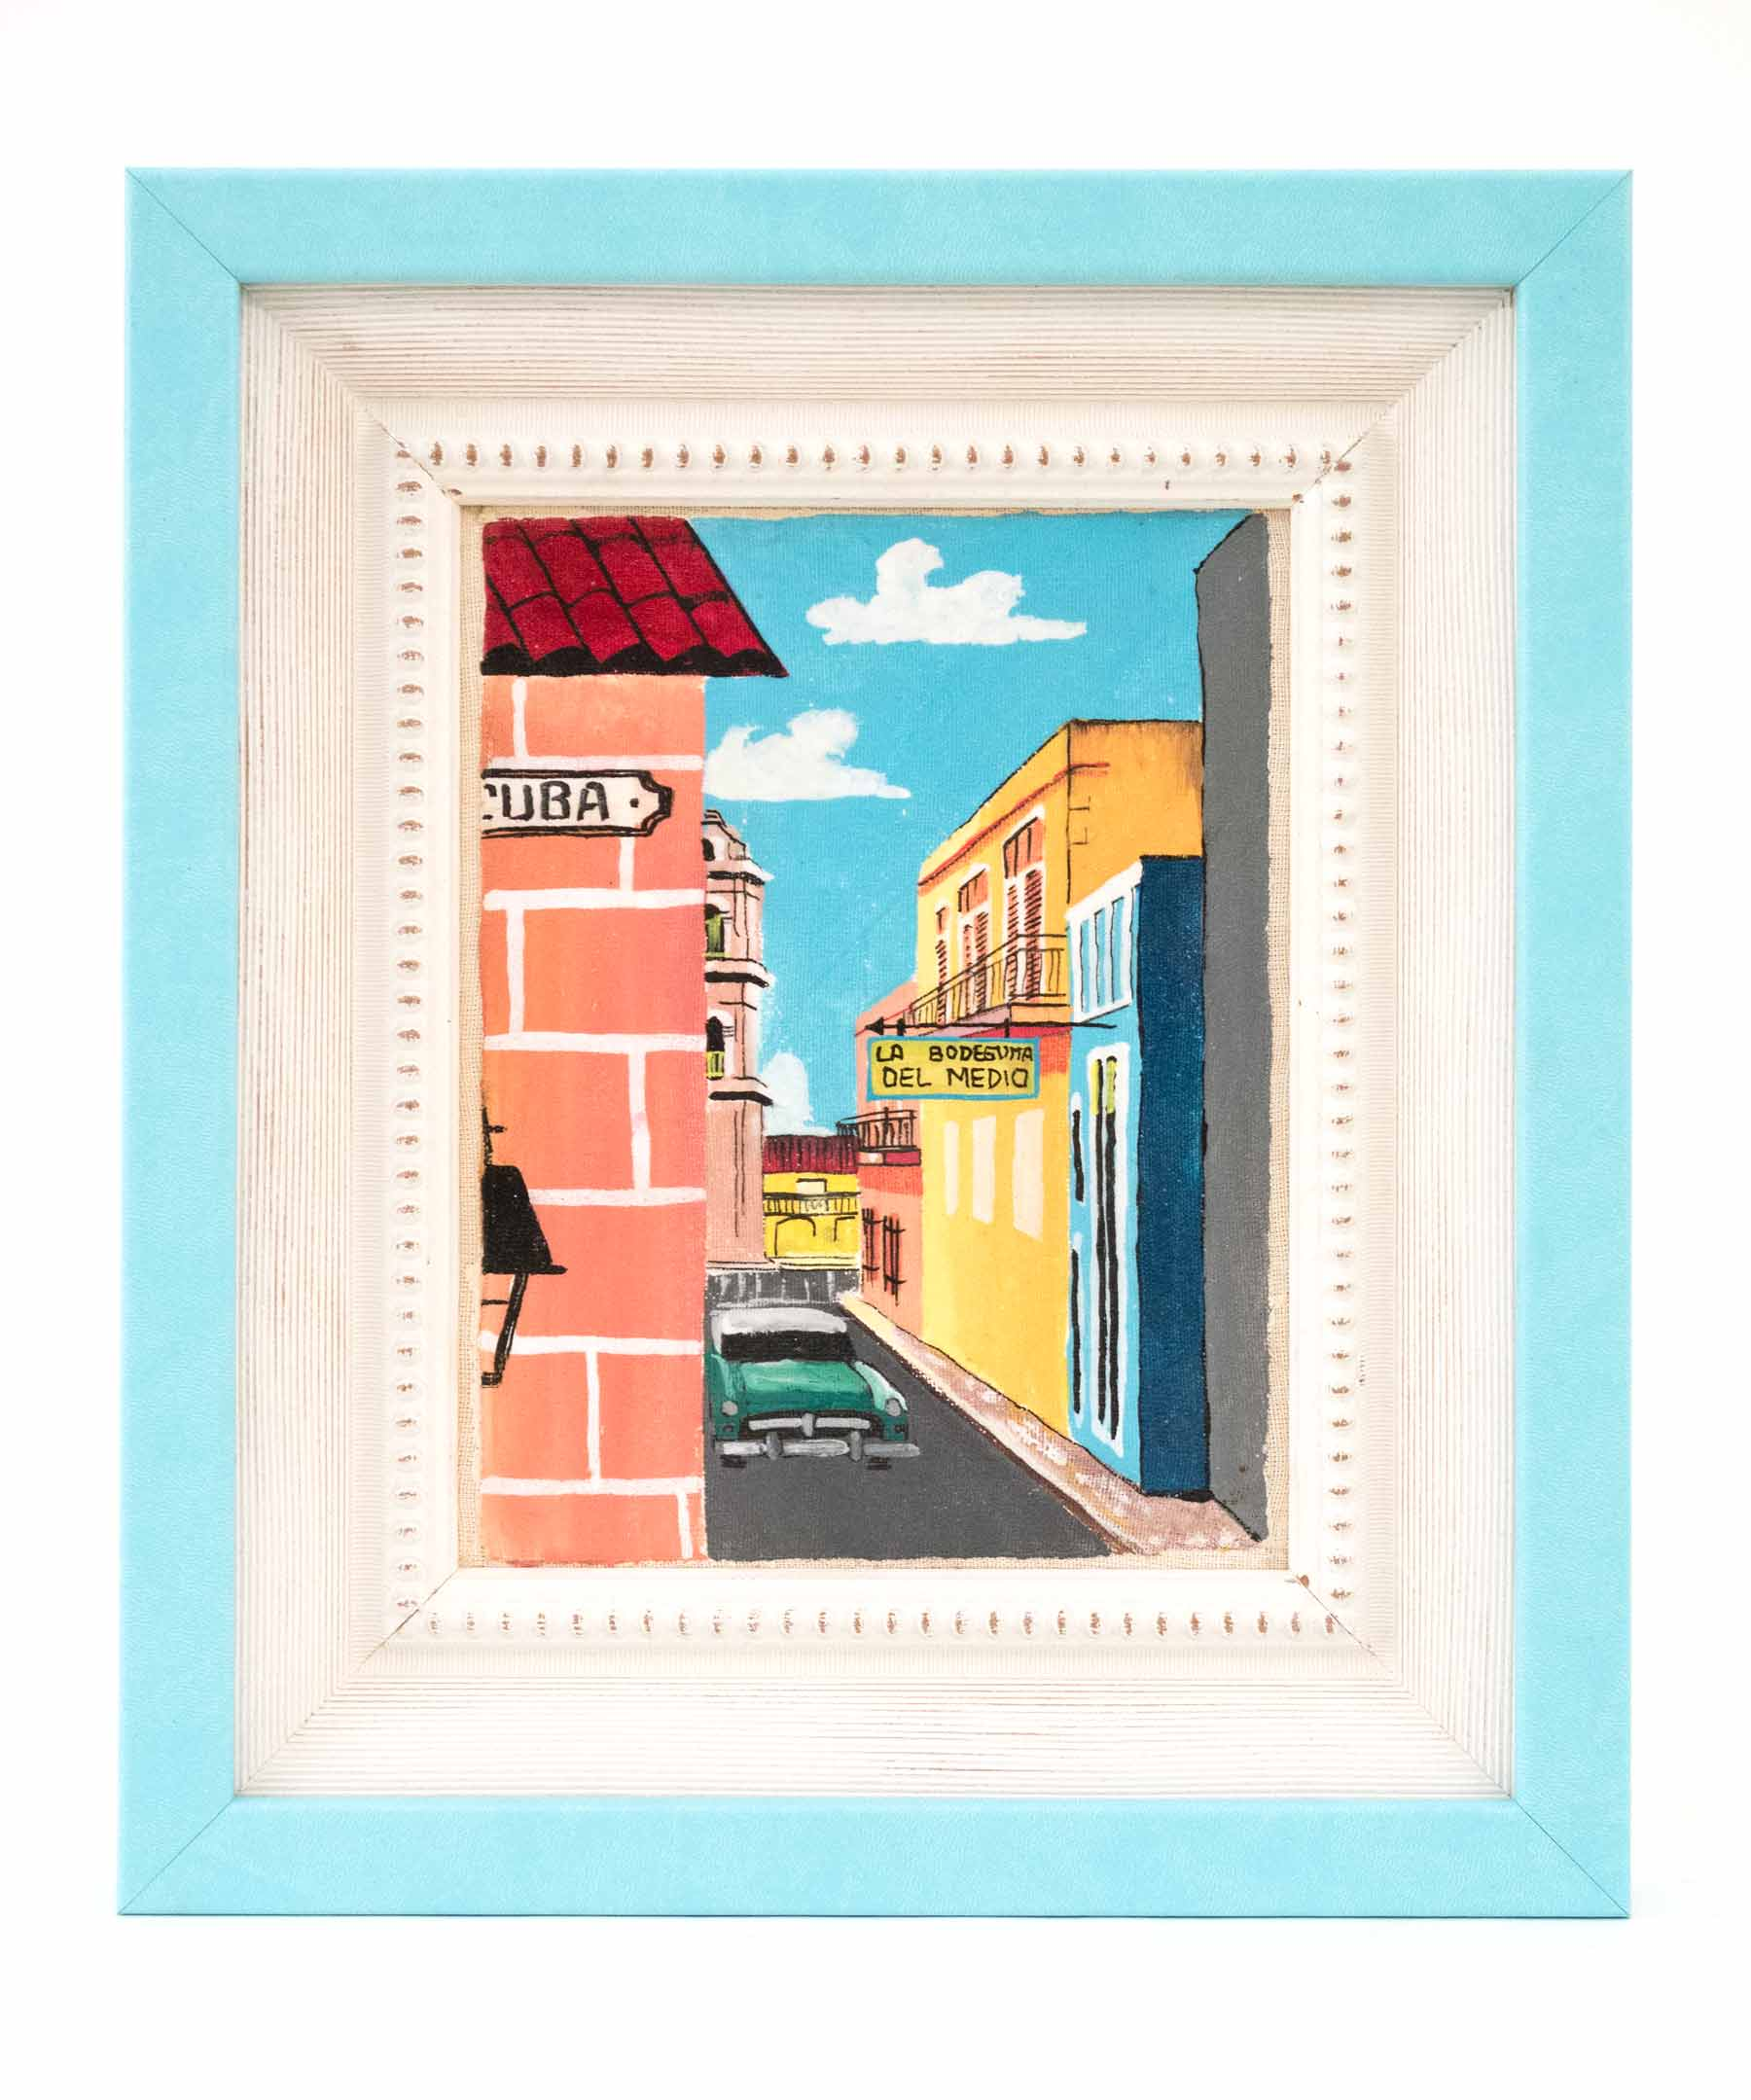 A souvenir purchase in Cuba, framed in Bahama Blue from the Malecon collection.